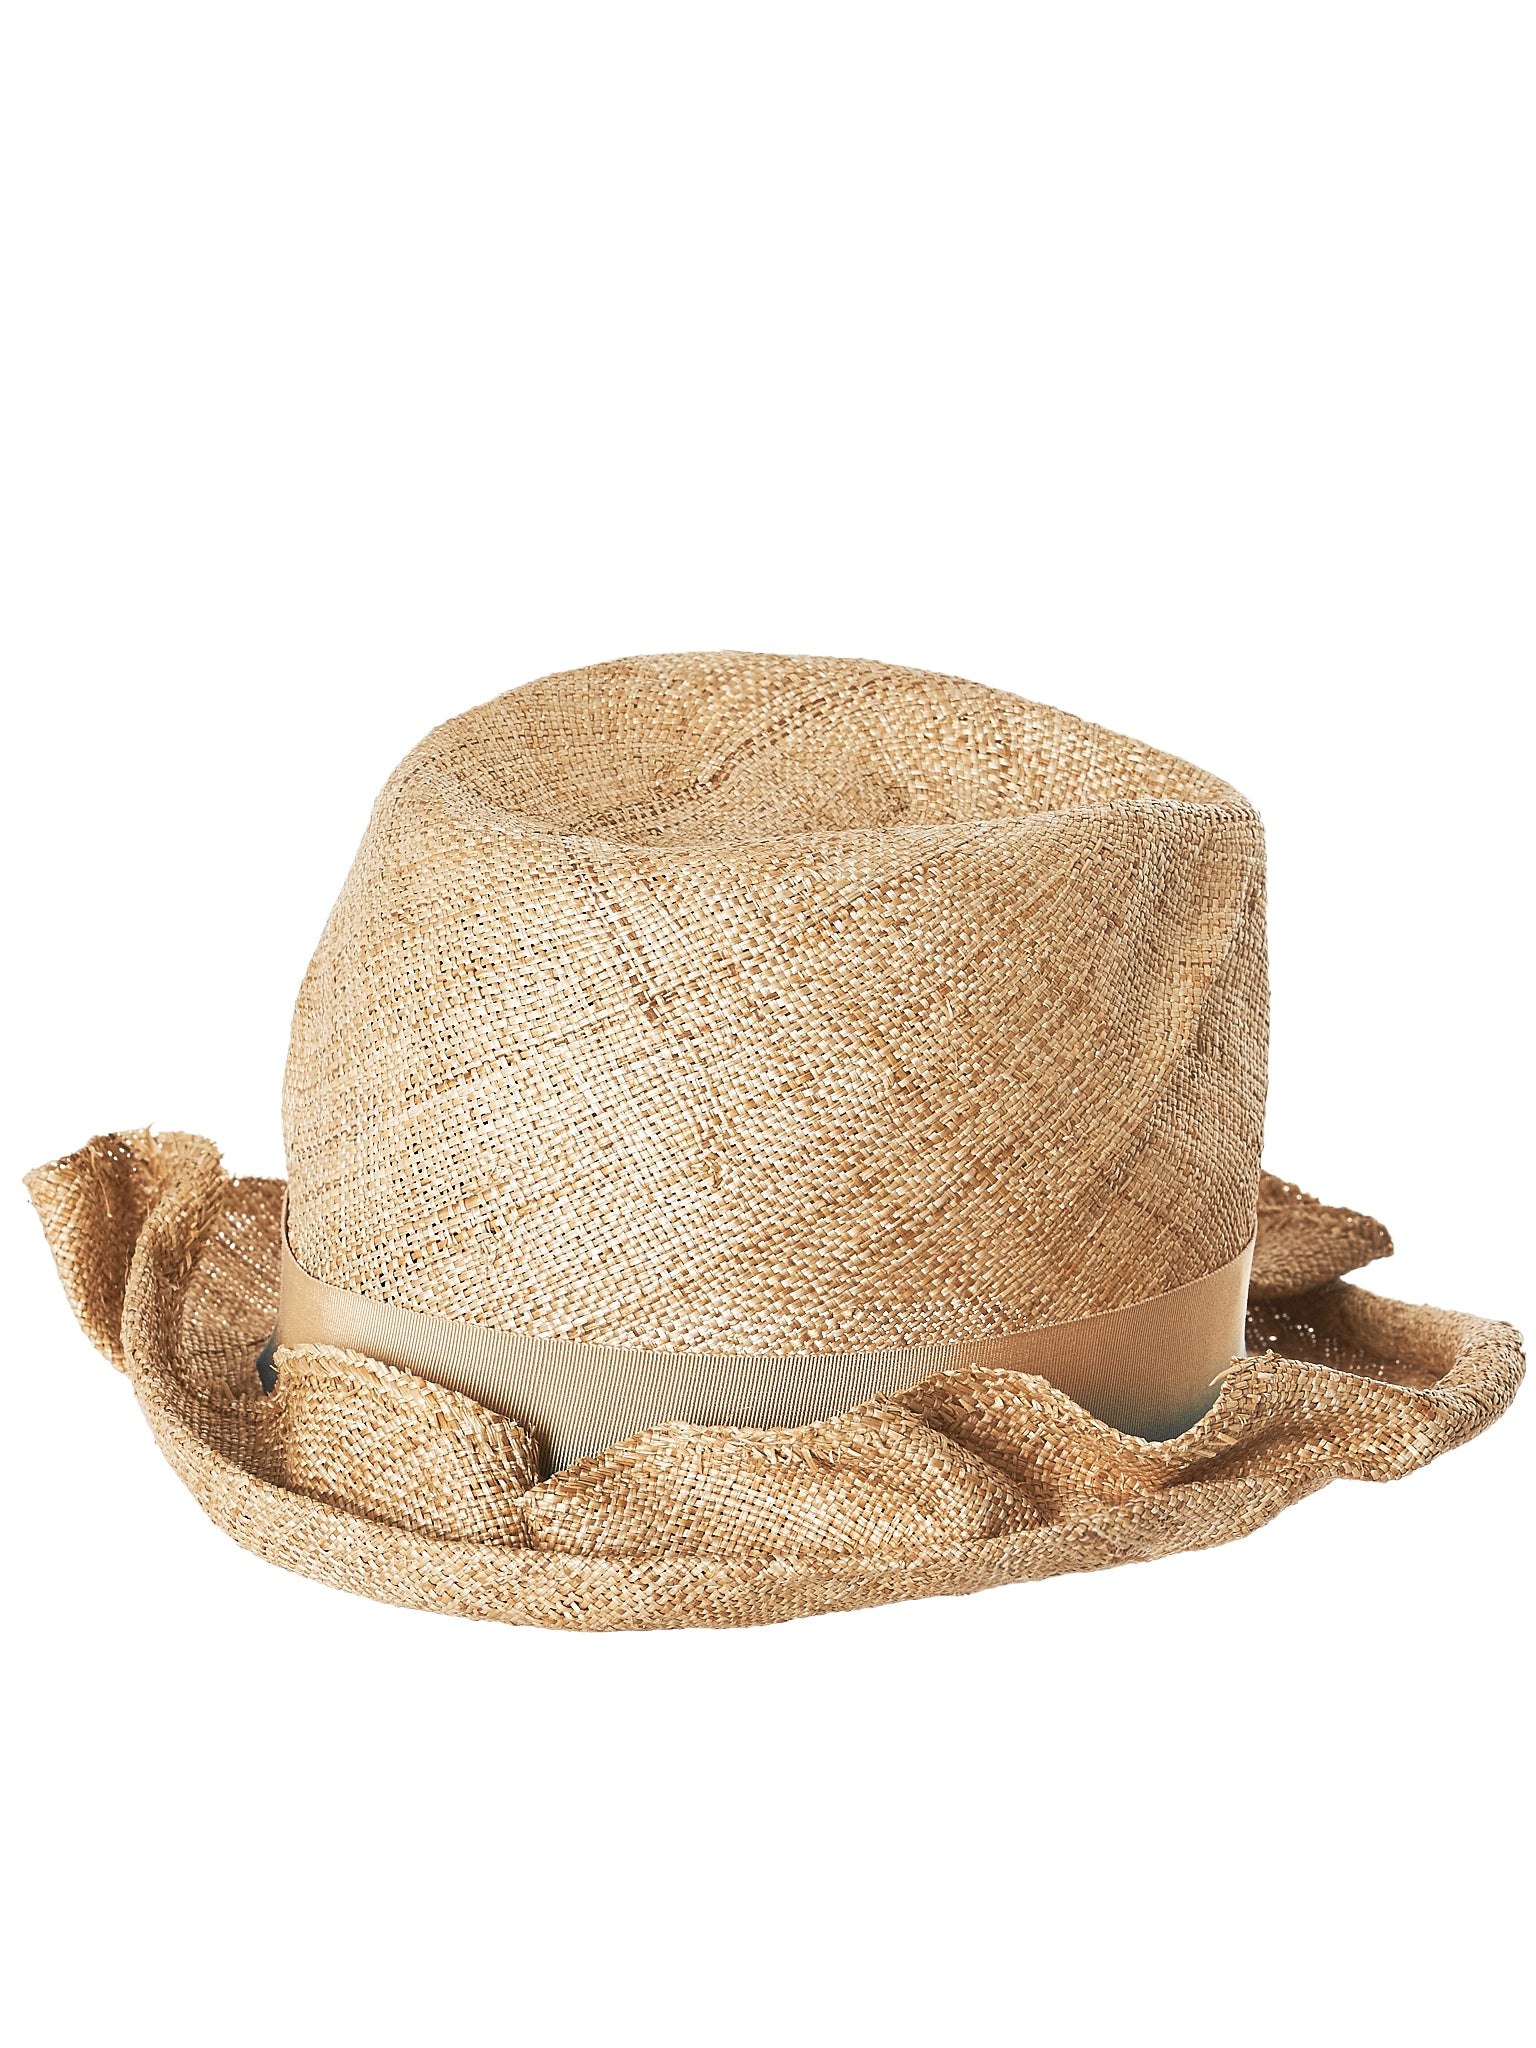 Stephen Jones Hat - Hlorenzo Front